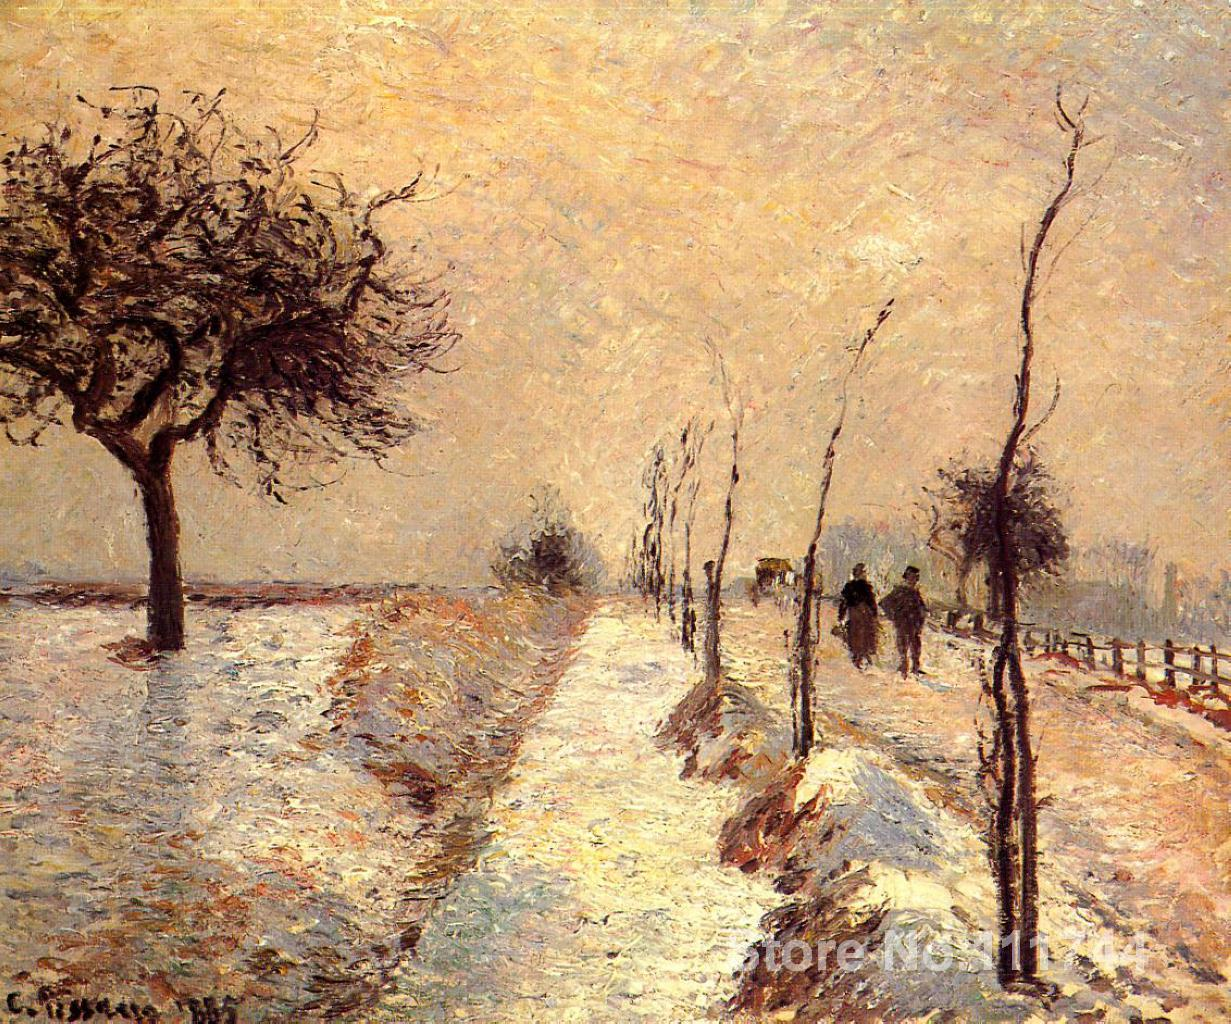 bedroom art Road at Eragny Winter Camille Pissarro paintings home decor High quality Hand paintedbedroom art Road at Eragny Winter Camille Pissarro paintings home decor High quality Hand painted